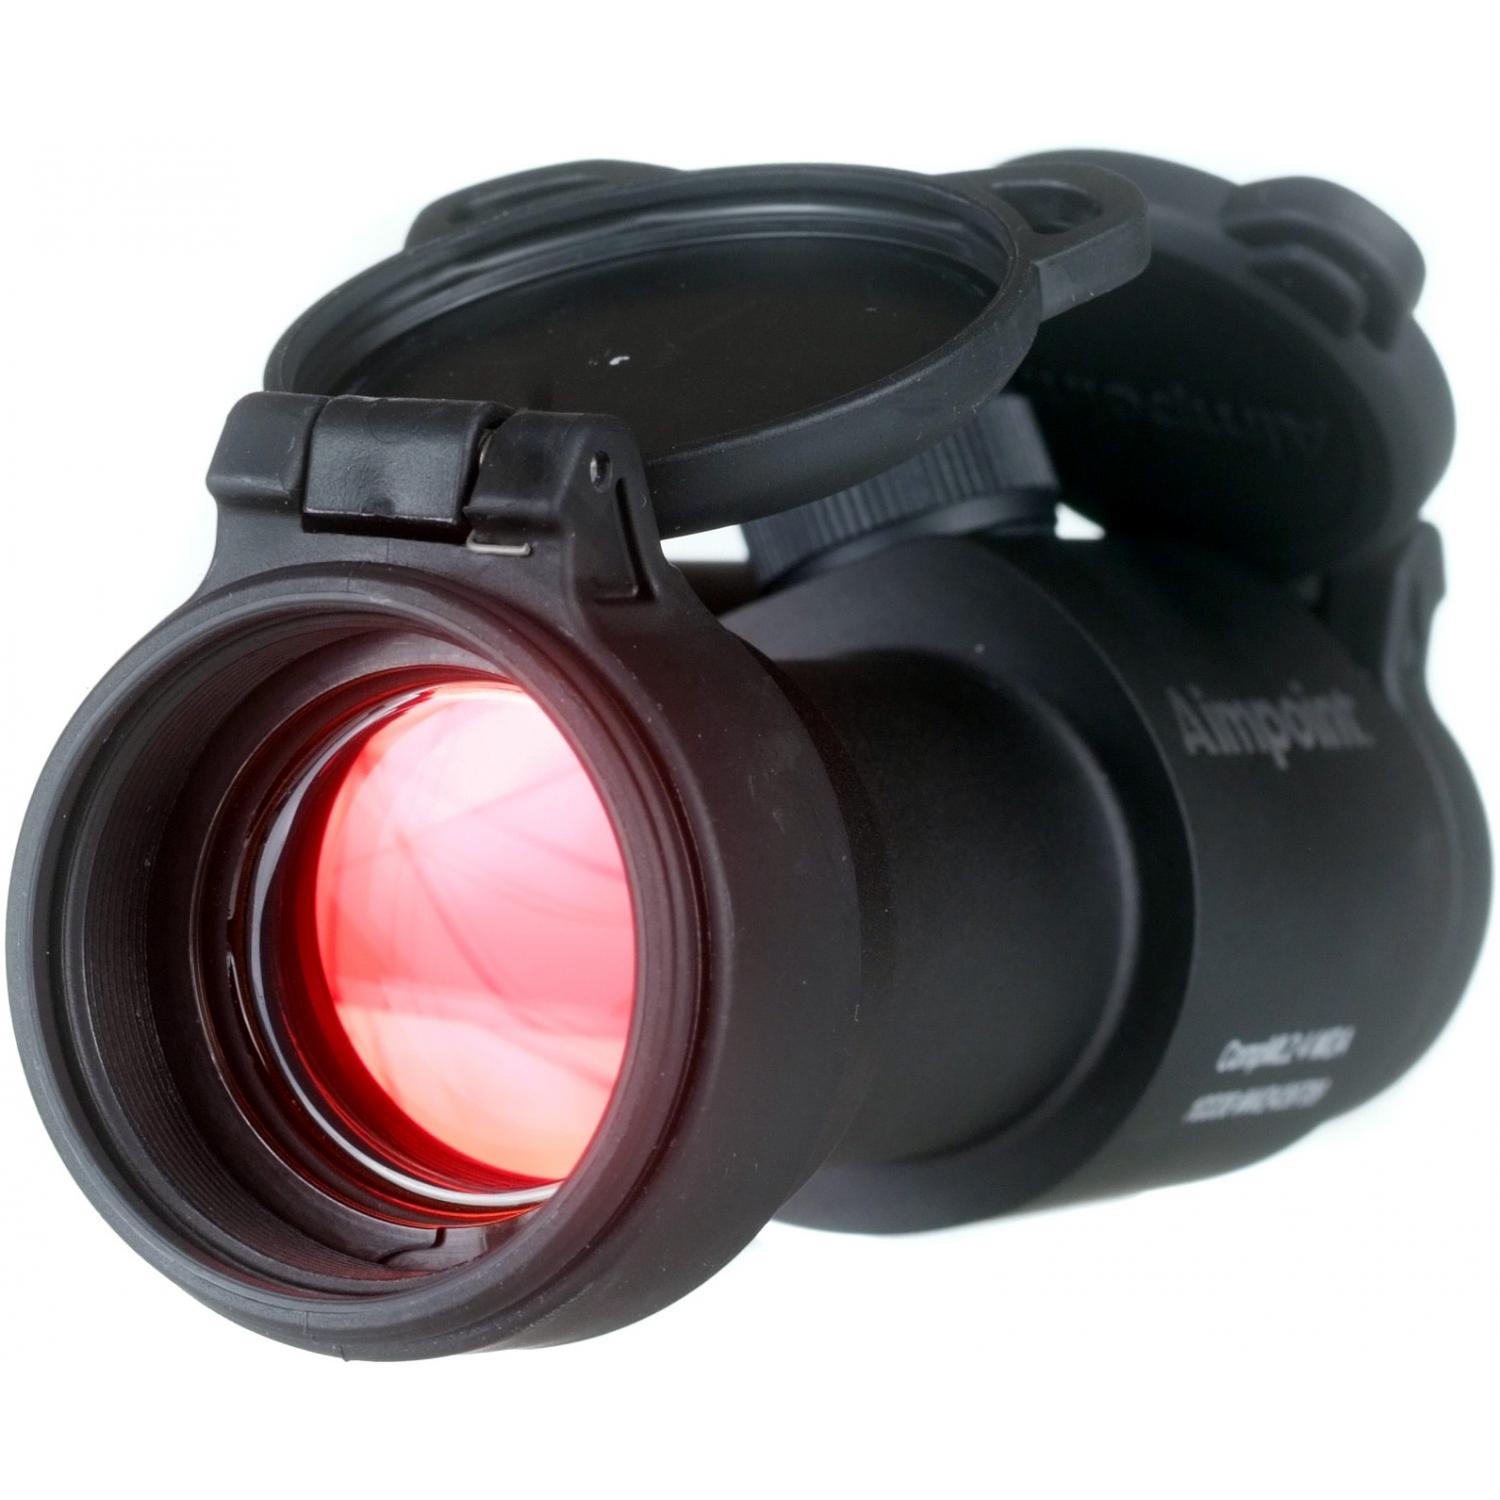 Aimpoint Compm2 Red Dot 4 Moa Sight - Black - 10336